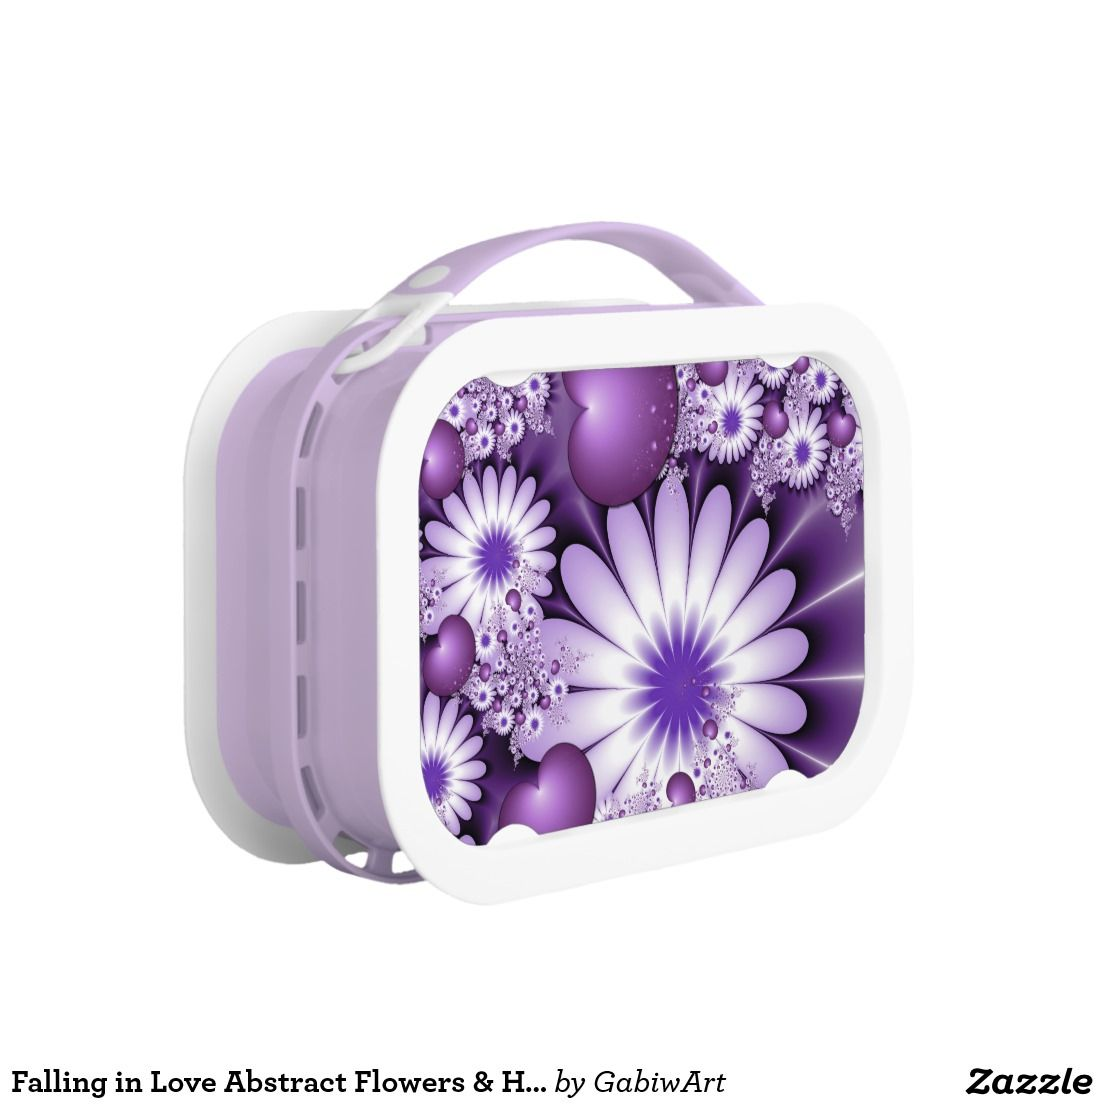 Falling in Love Abstract Flowers & Hearts Fractal Lunch Box